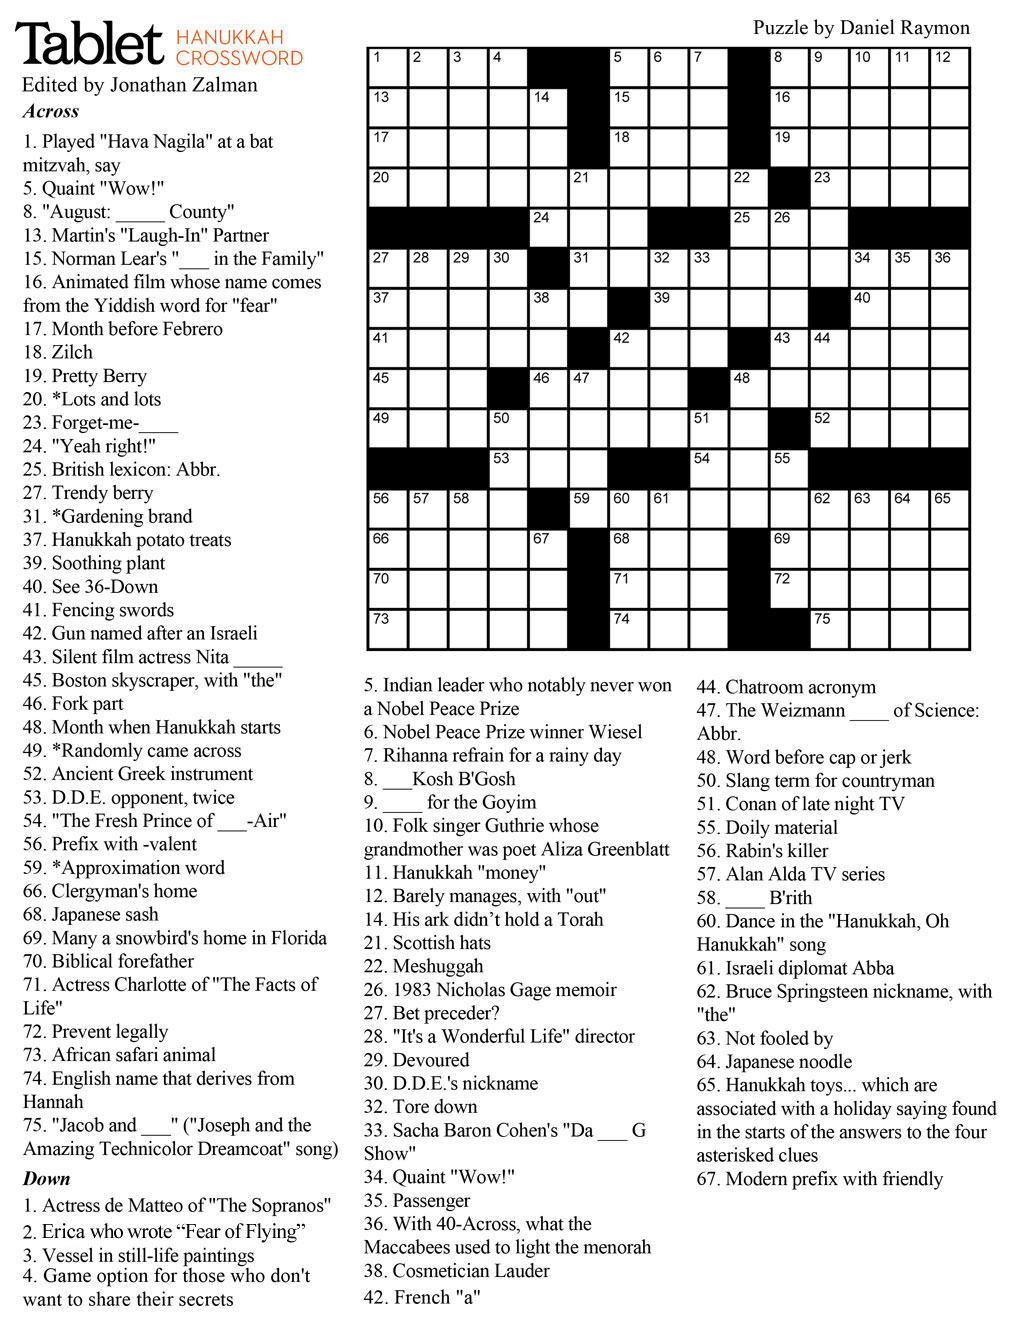 Wind Down With Our Hanukkah Crossword Puzzle! – Tablet Magazine - You Magazine Printable Crossword Puzzles